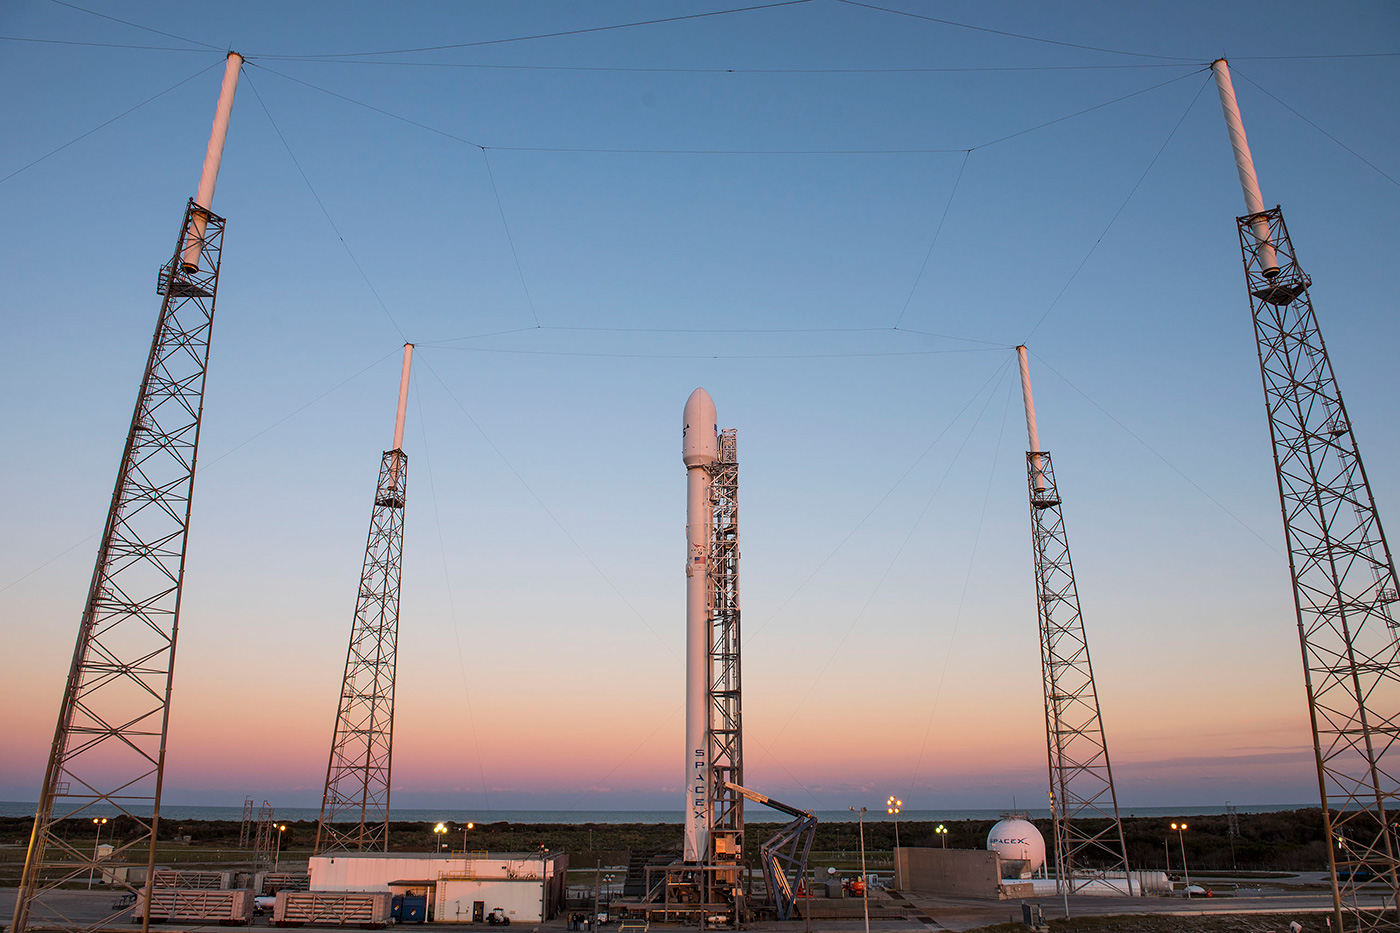 SpaceX will attempt another launch and sea landing today (updated)